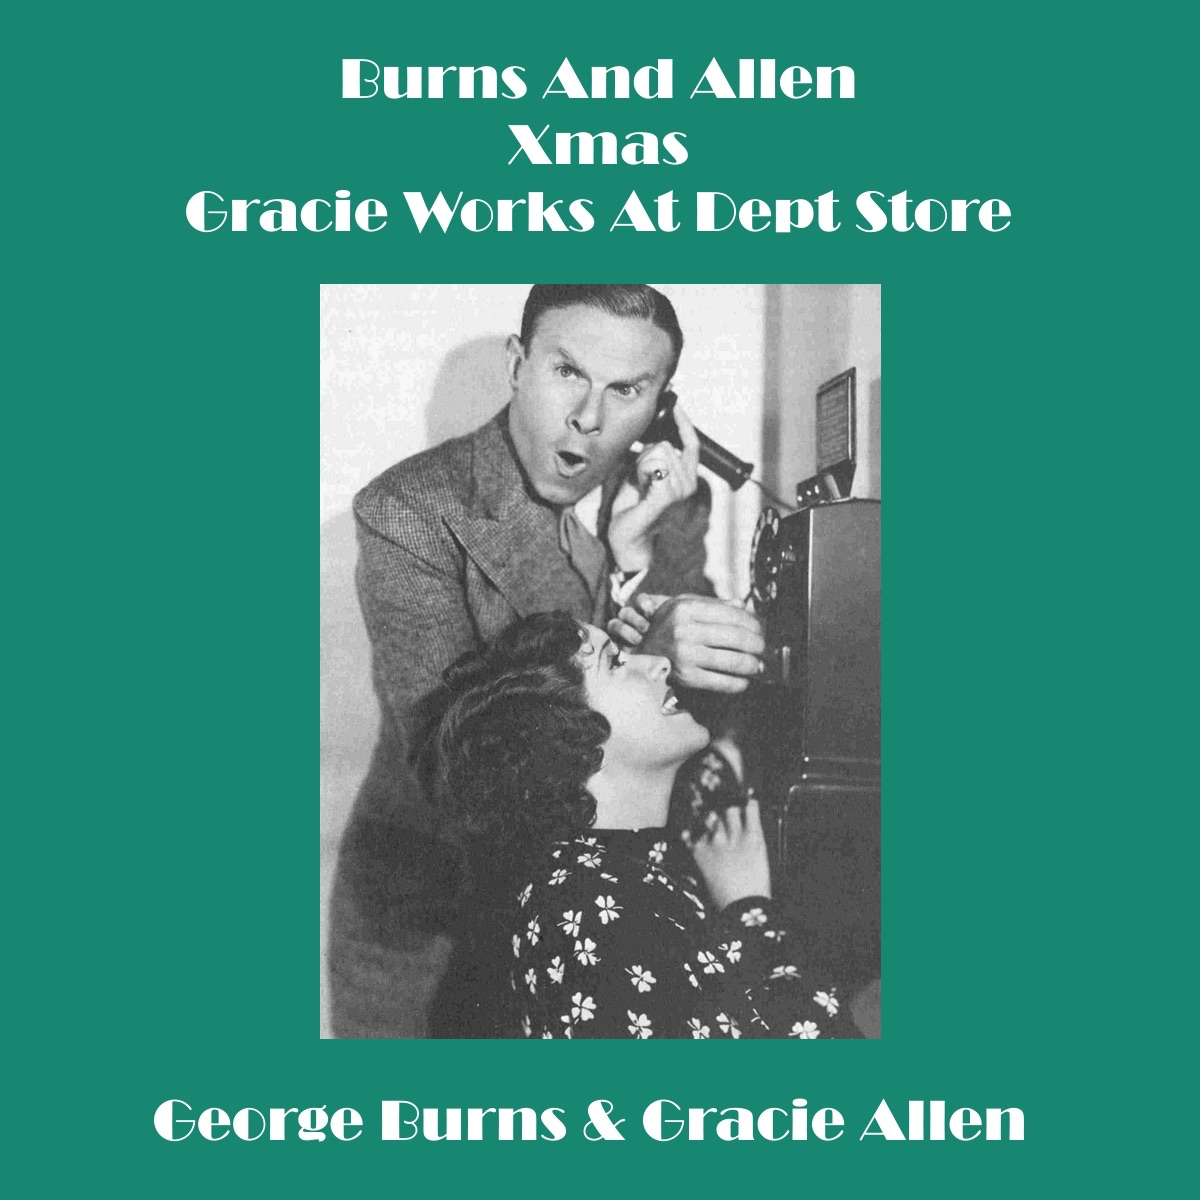 Burns And Allen - Xmas - Gracie Works At Dept Store